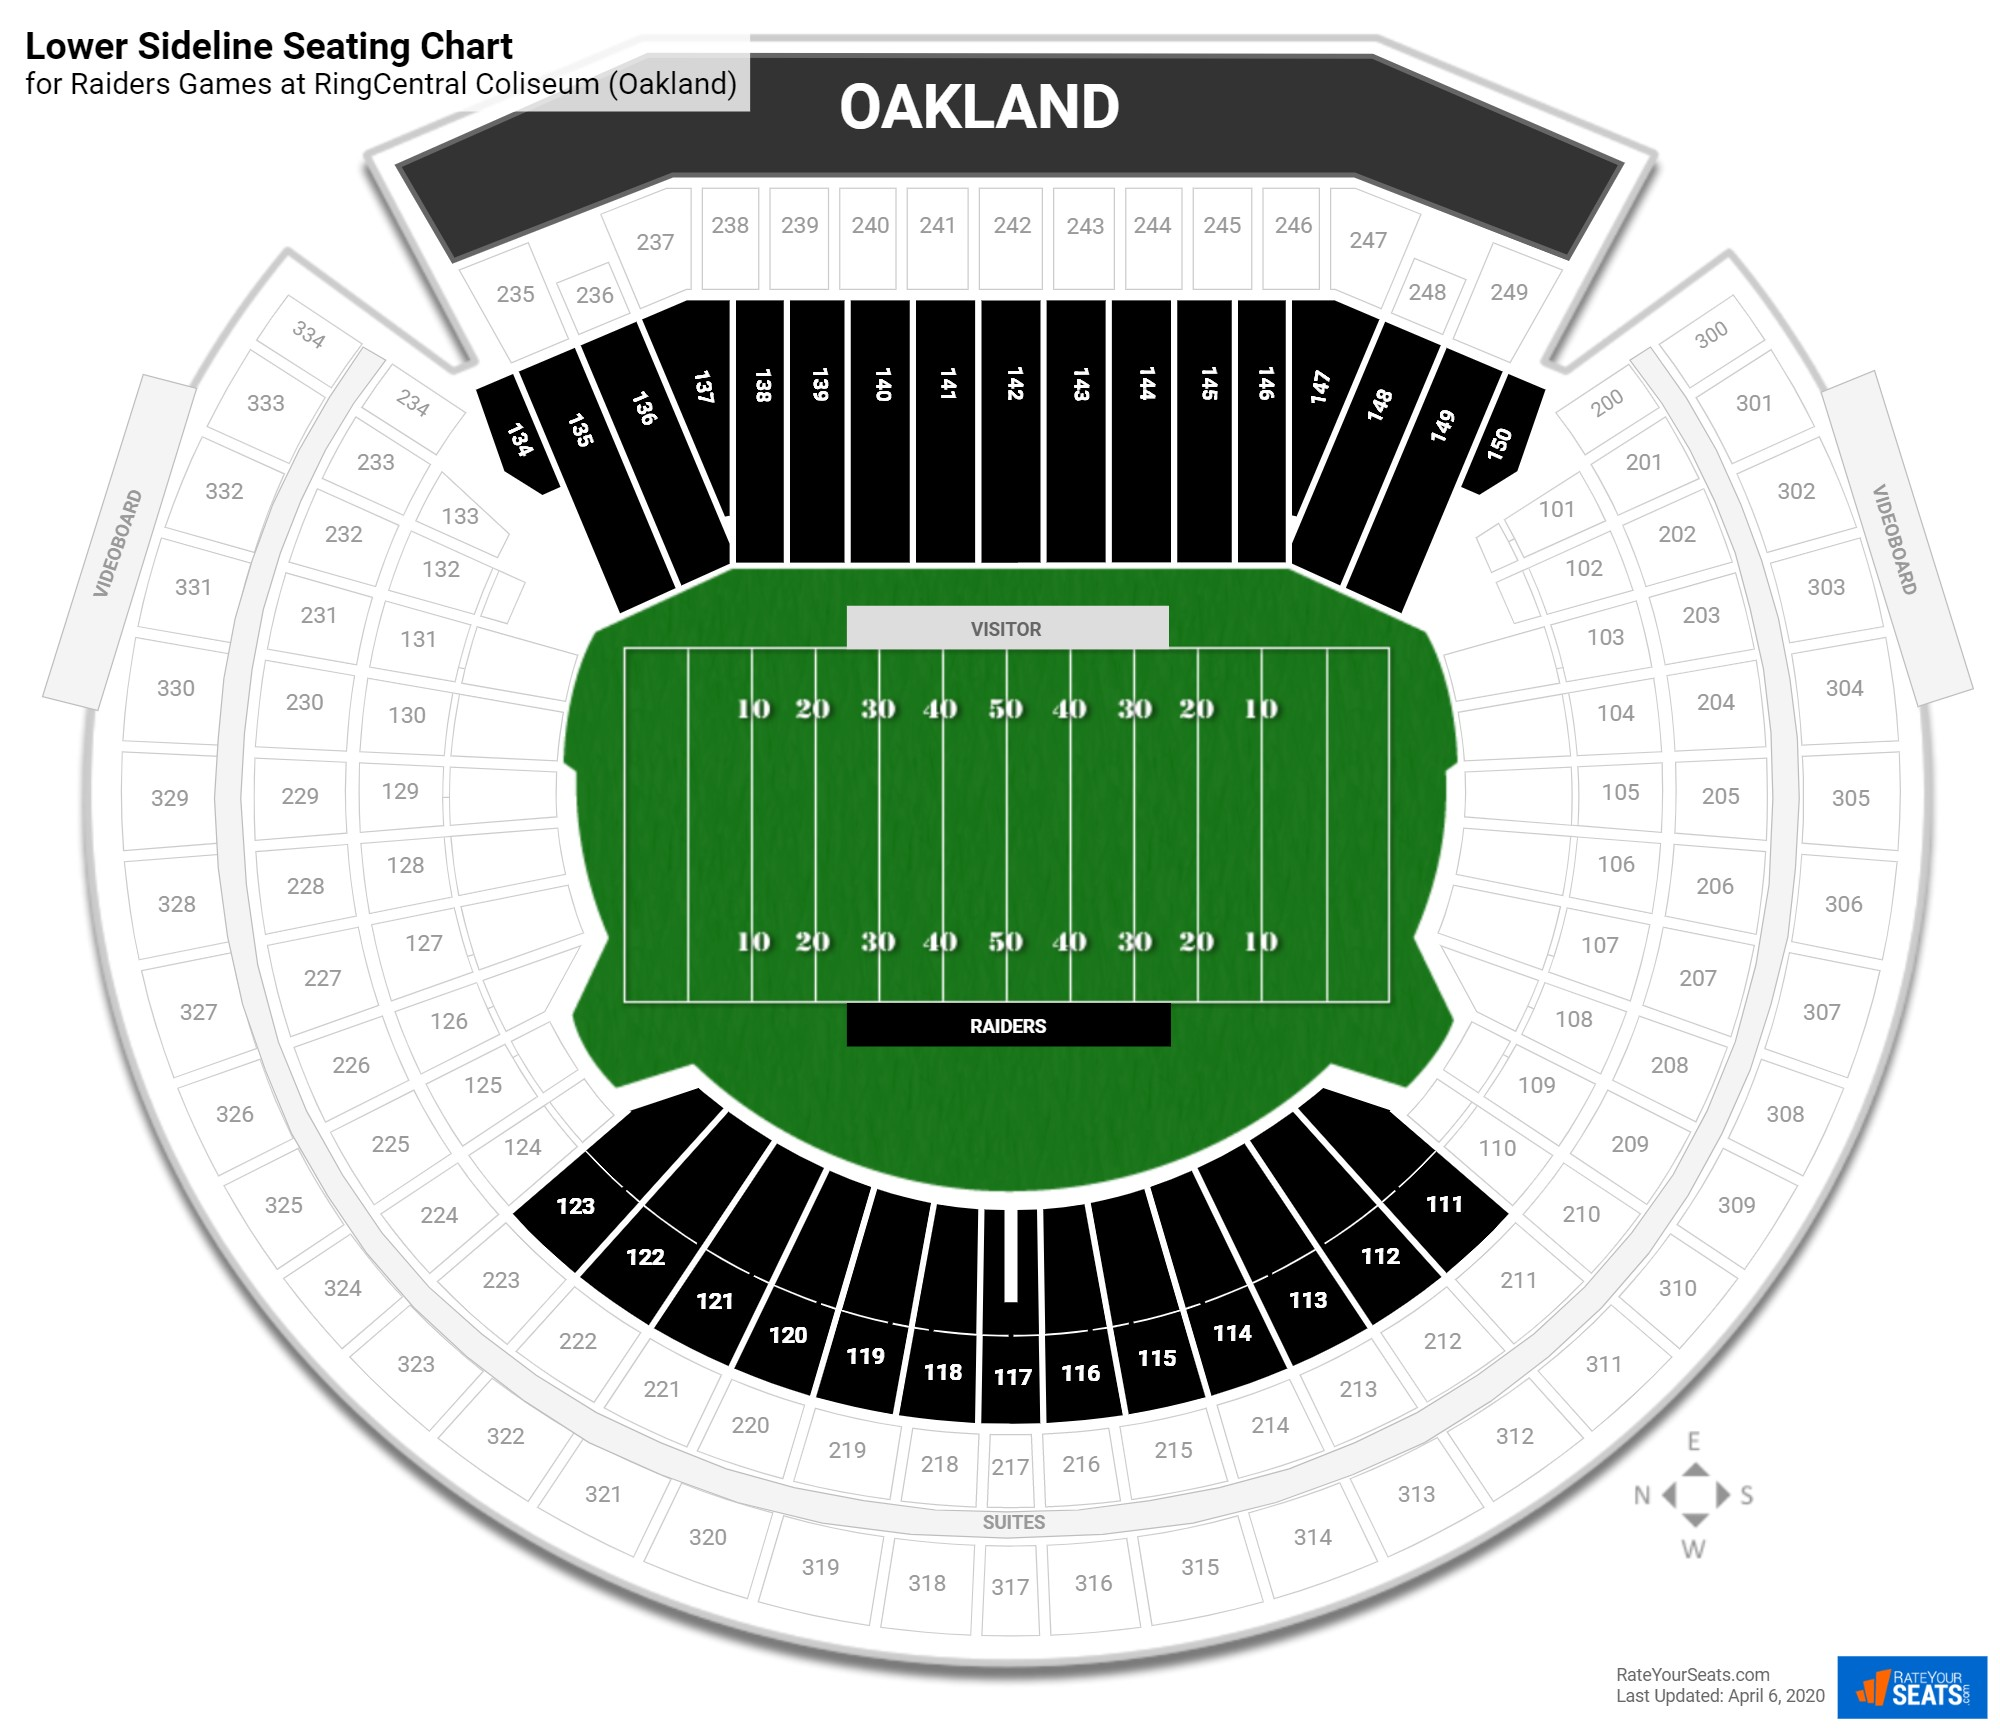 Oakland Coliseum Lower Sideline seating chart